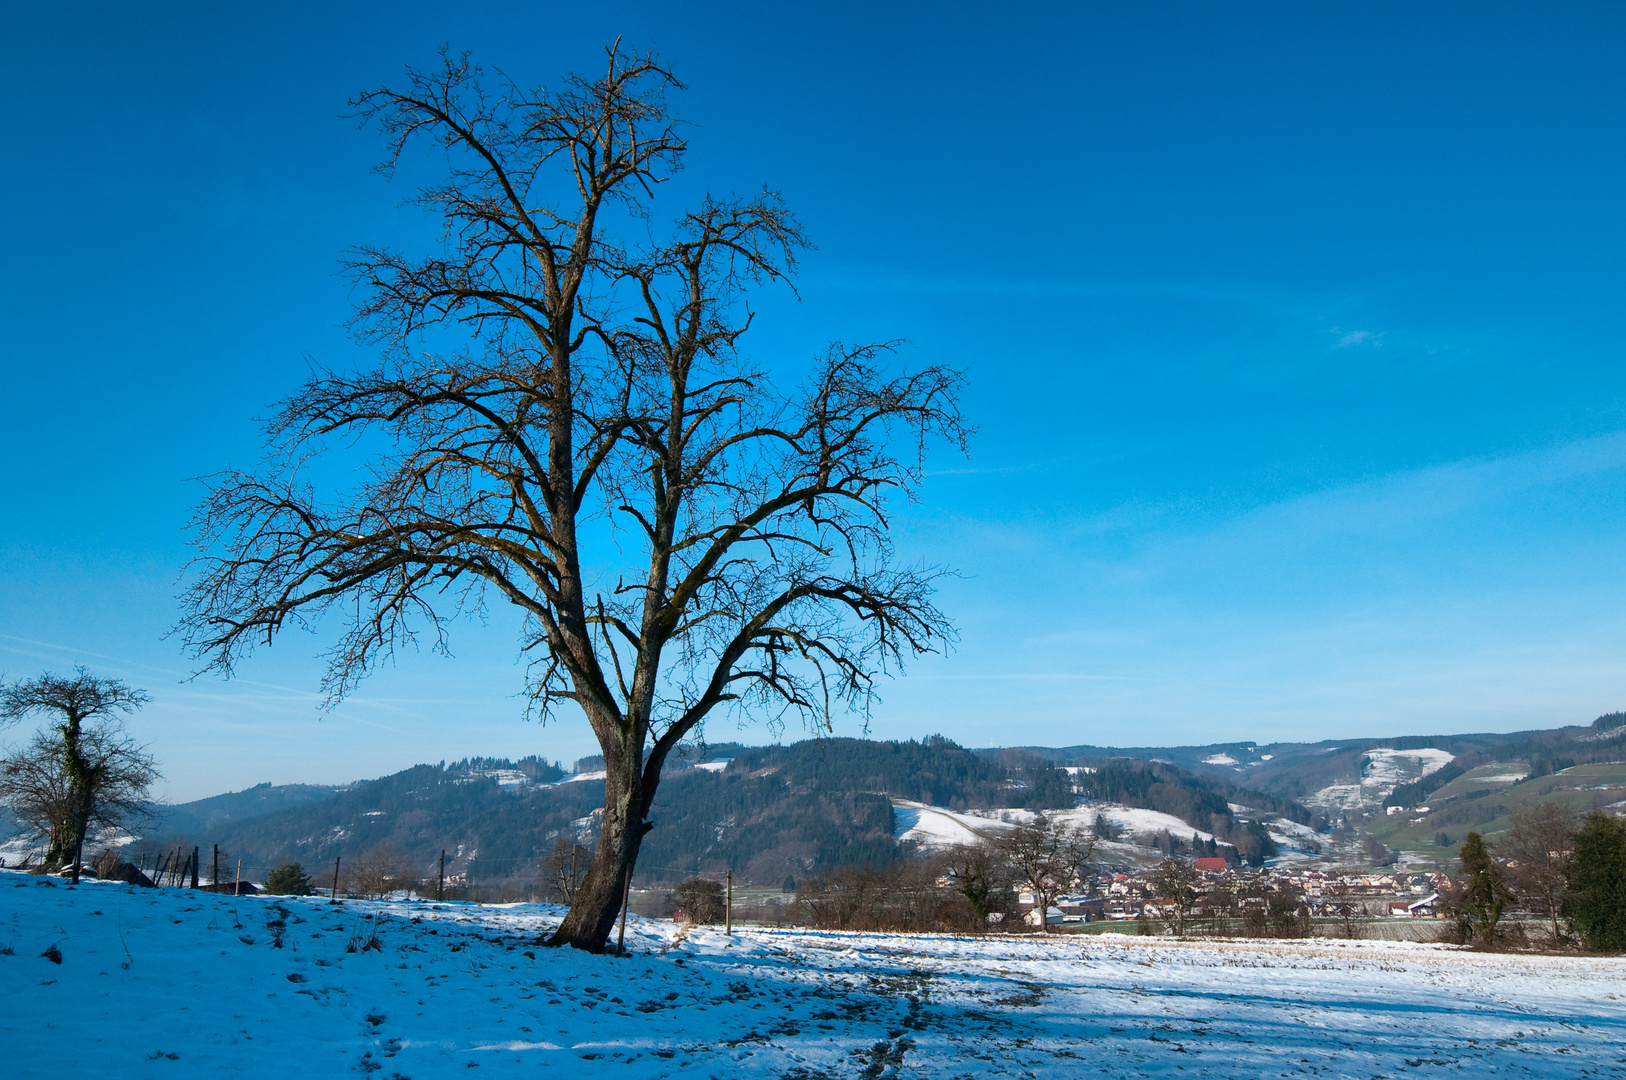 black forest.lonley tree